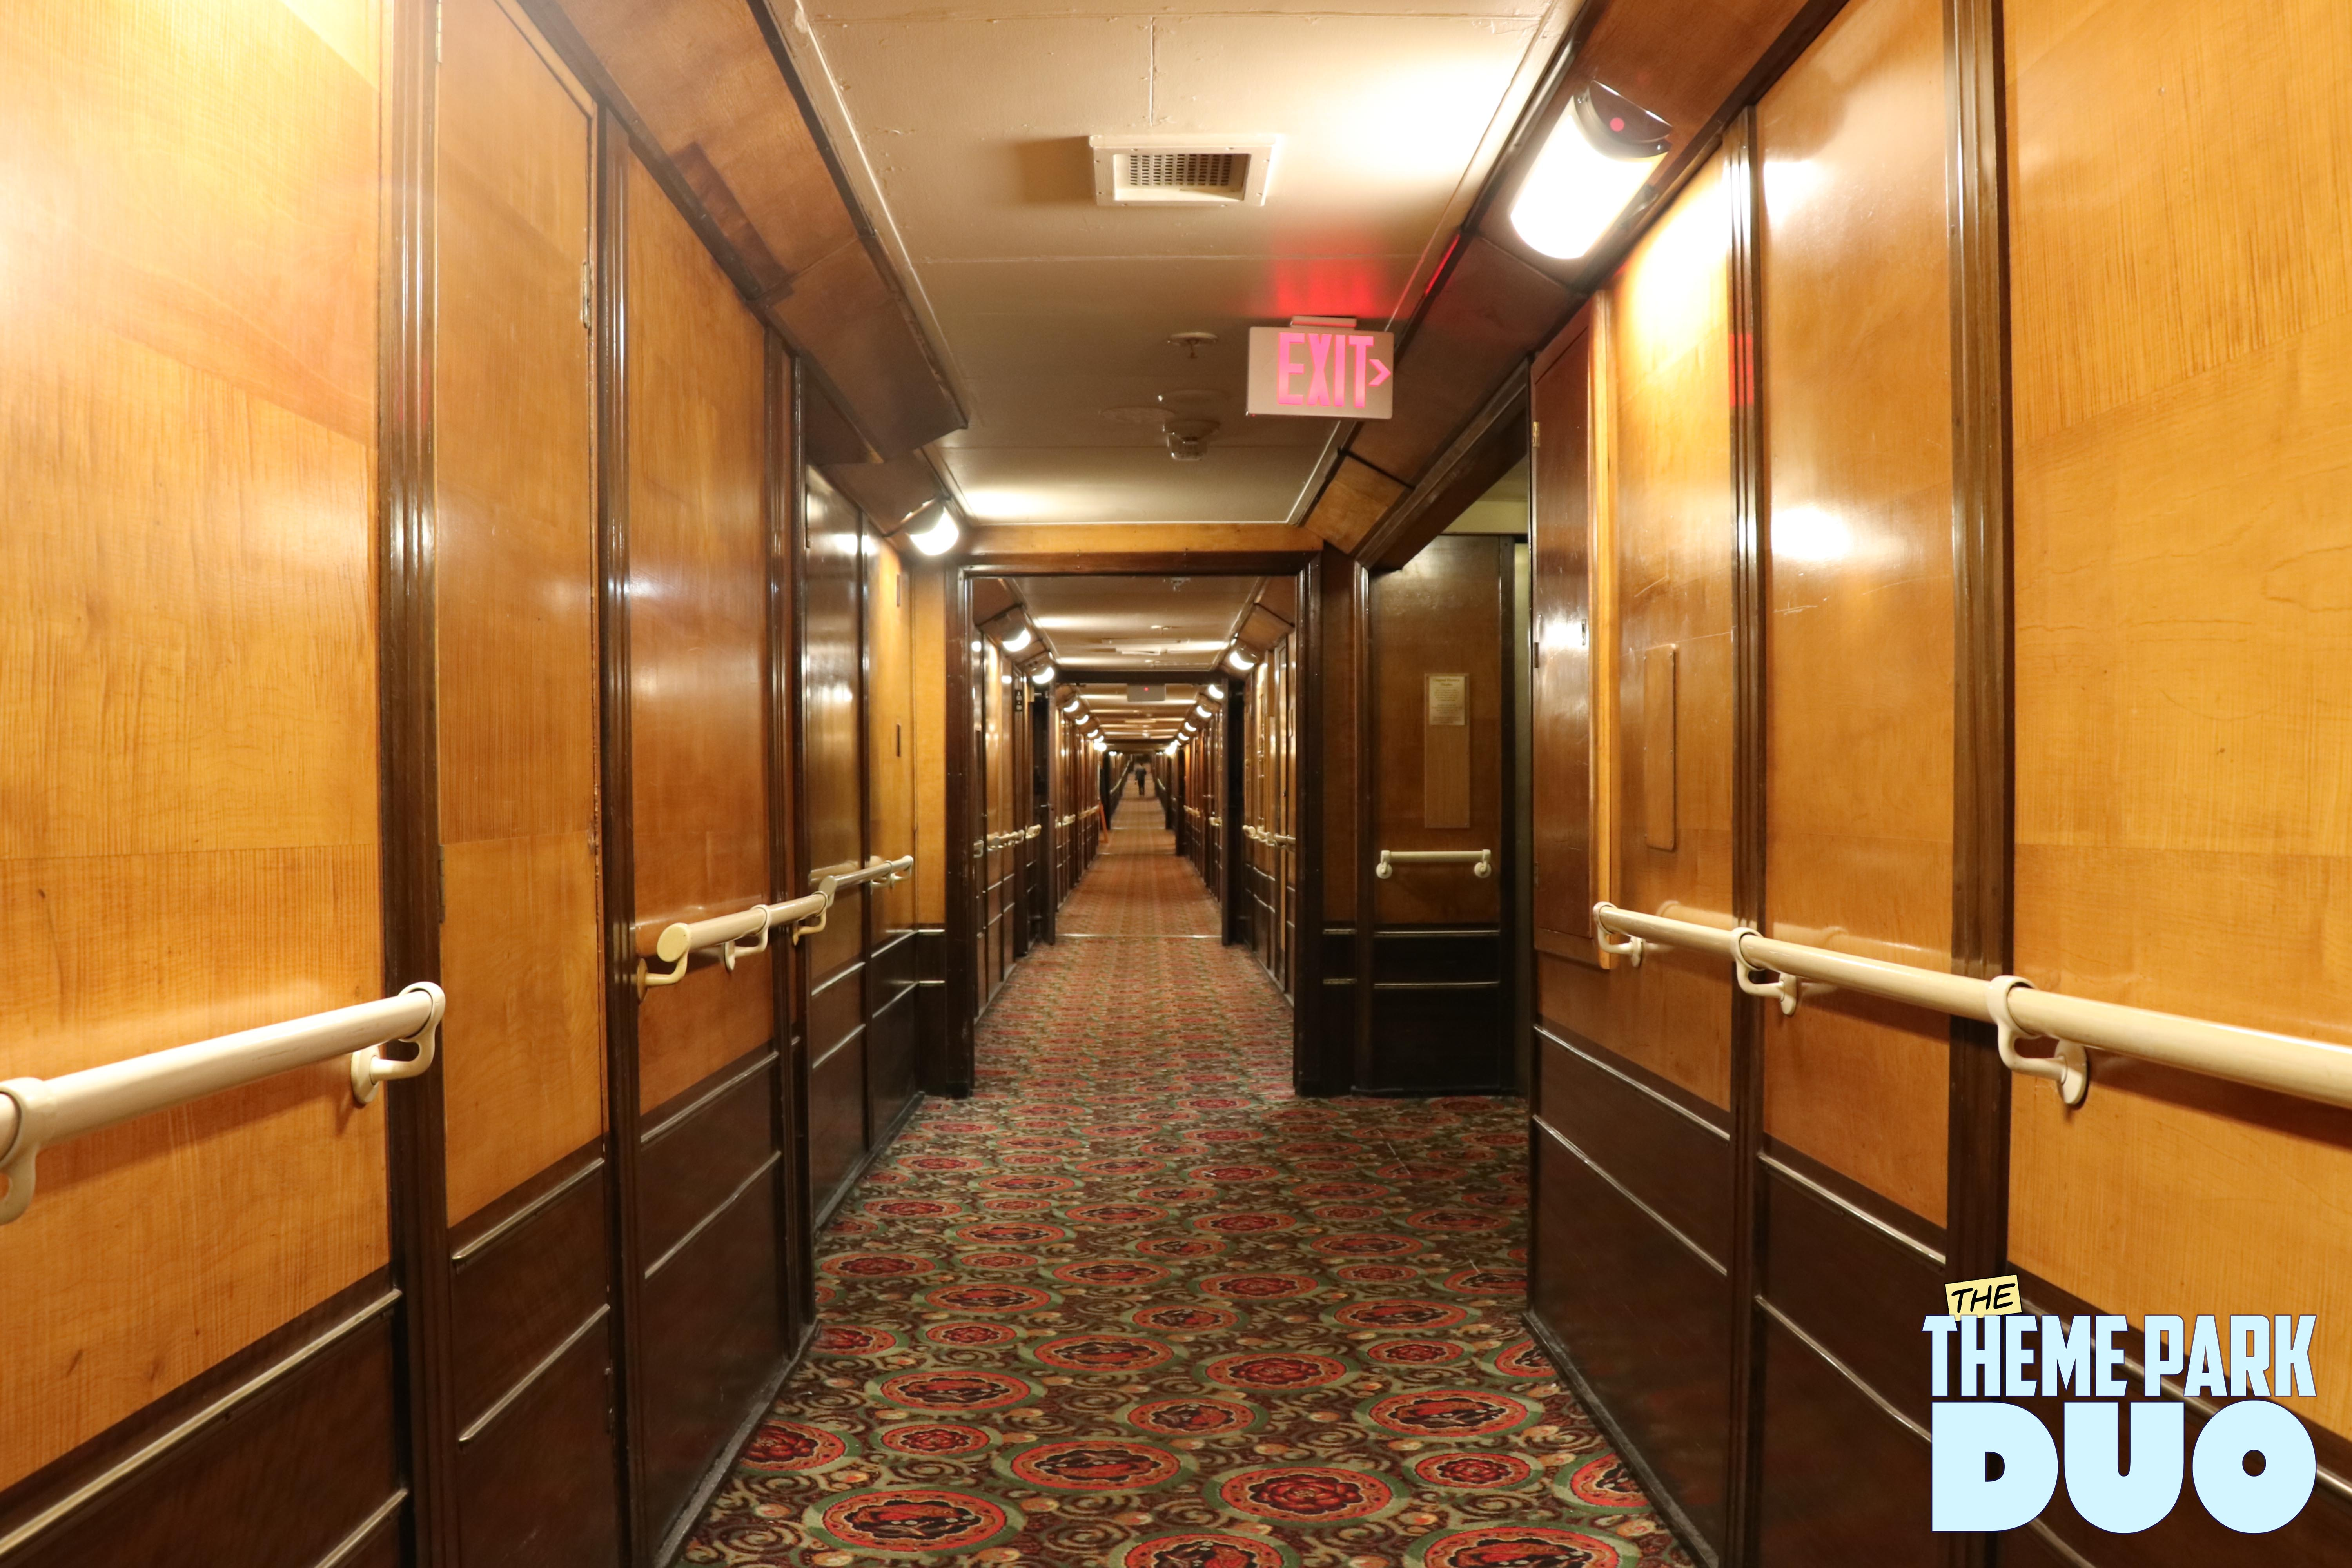 The Queen Mary Showcasing Its Haunted History And Ghostly